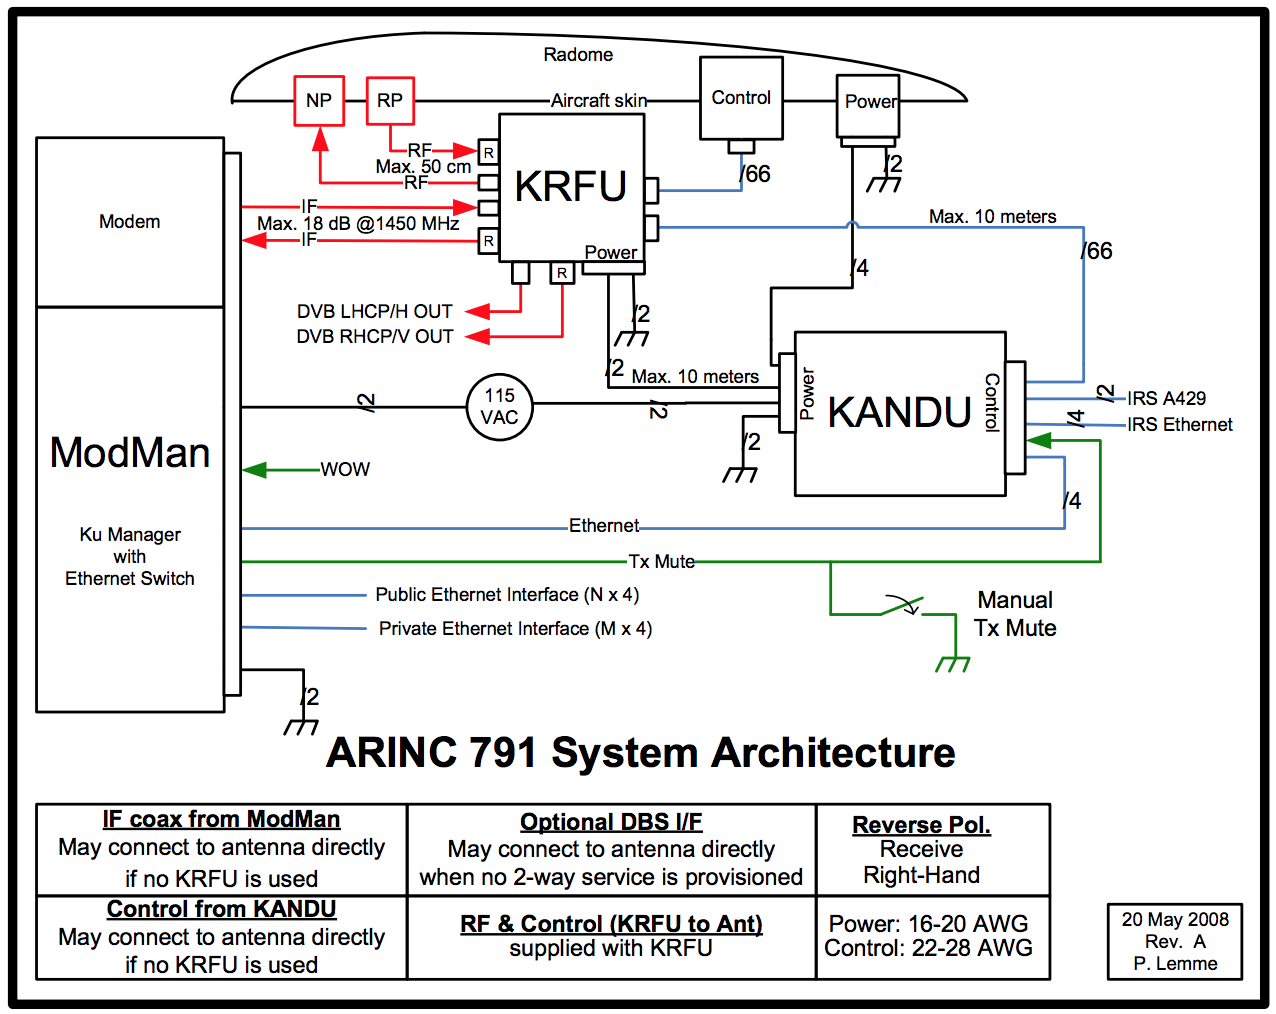 Satcom Guru 10 Years Later Still Standardizing Aero Ku Ka Old Boeing Wiring Diagrams Arinc 791 Part 1 Was Published In 2011 We Produced Supplement Late 2012 And 2 2014 Are Working On 3 Currently